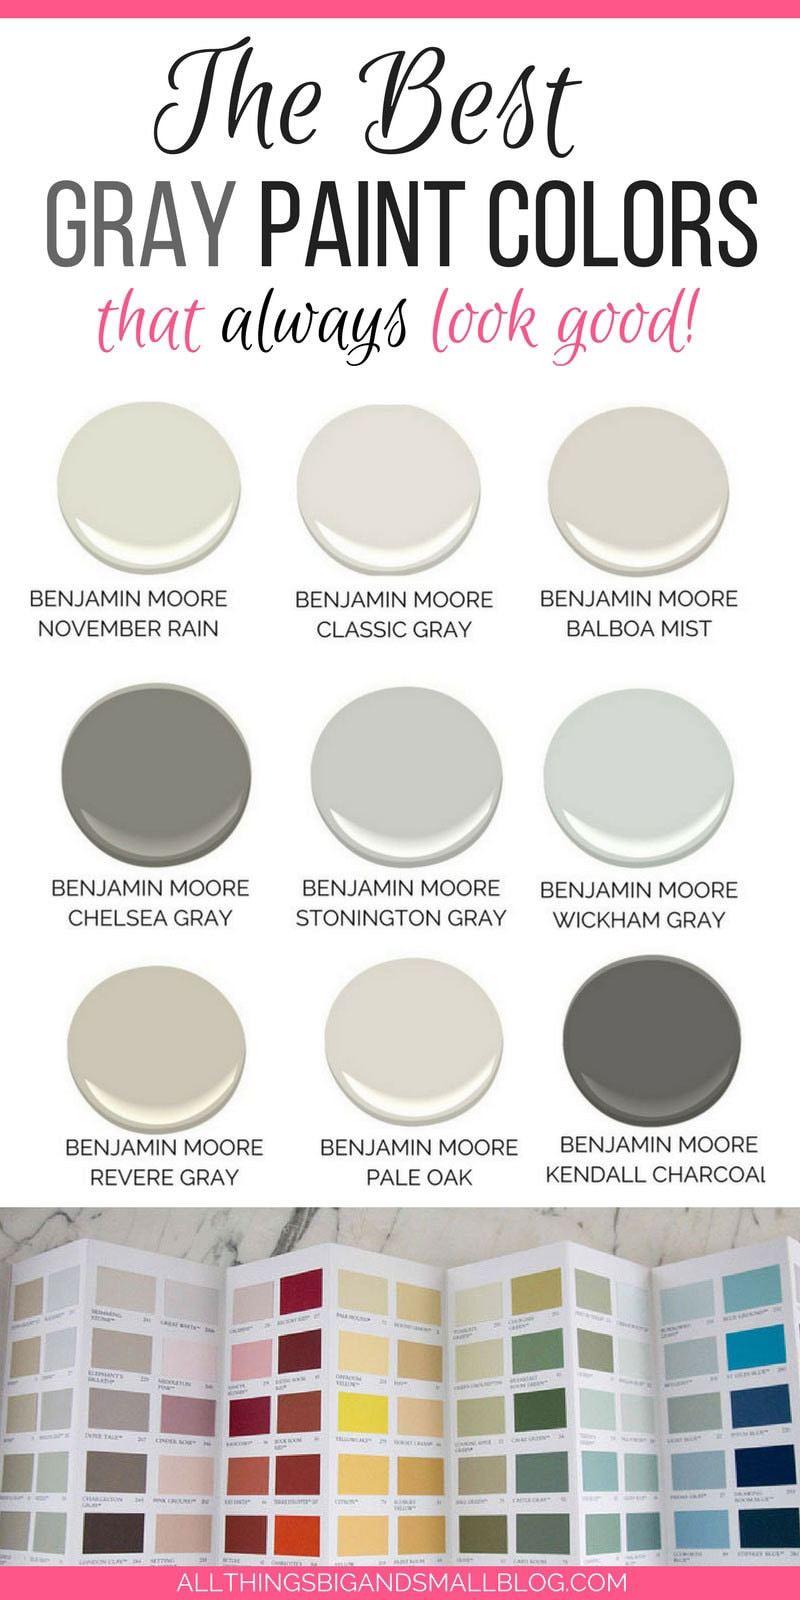 Best ideas about Best Grey Paint Colors . Save or Pin The Best Gray Paint Colors NEVER FAIL Gray Paints Now.